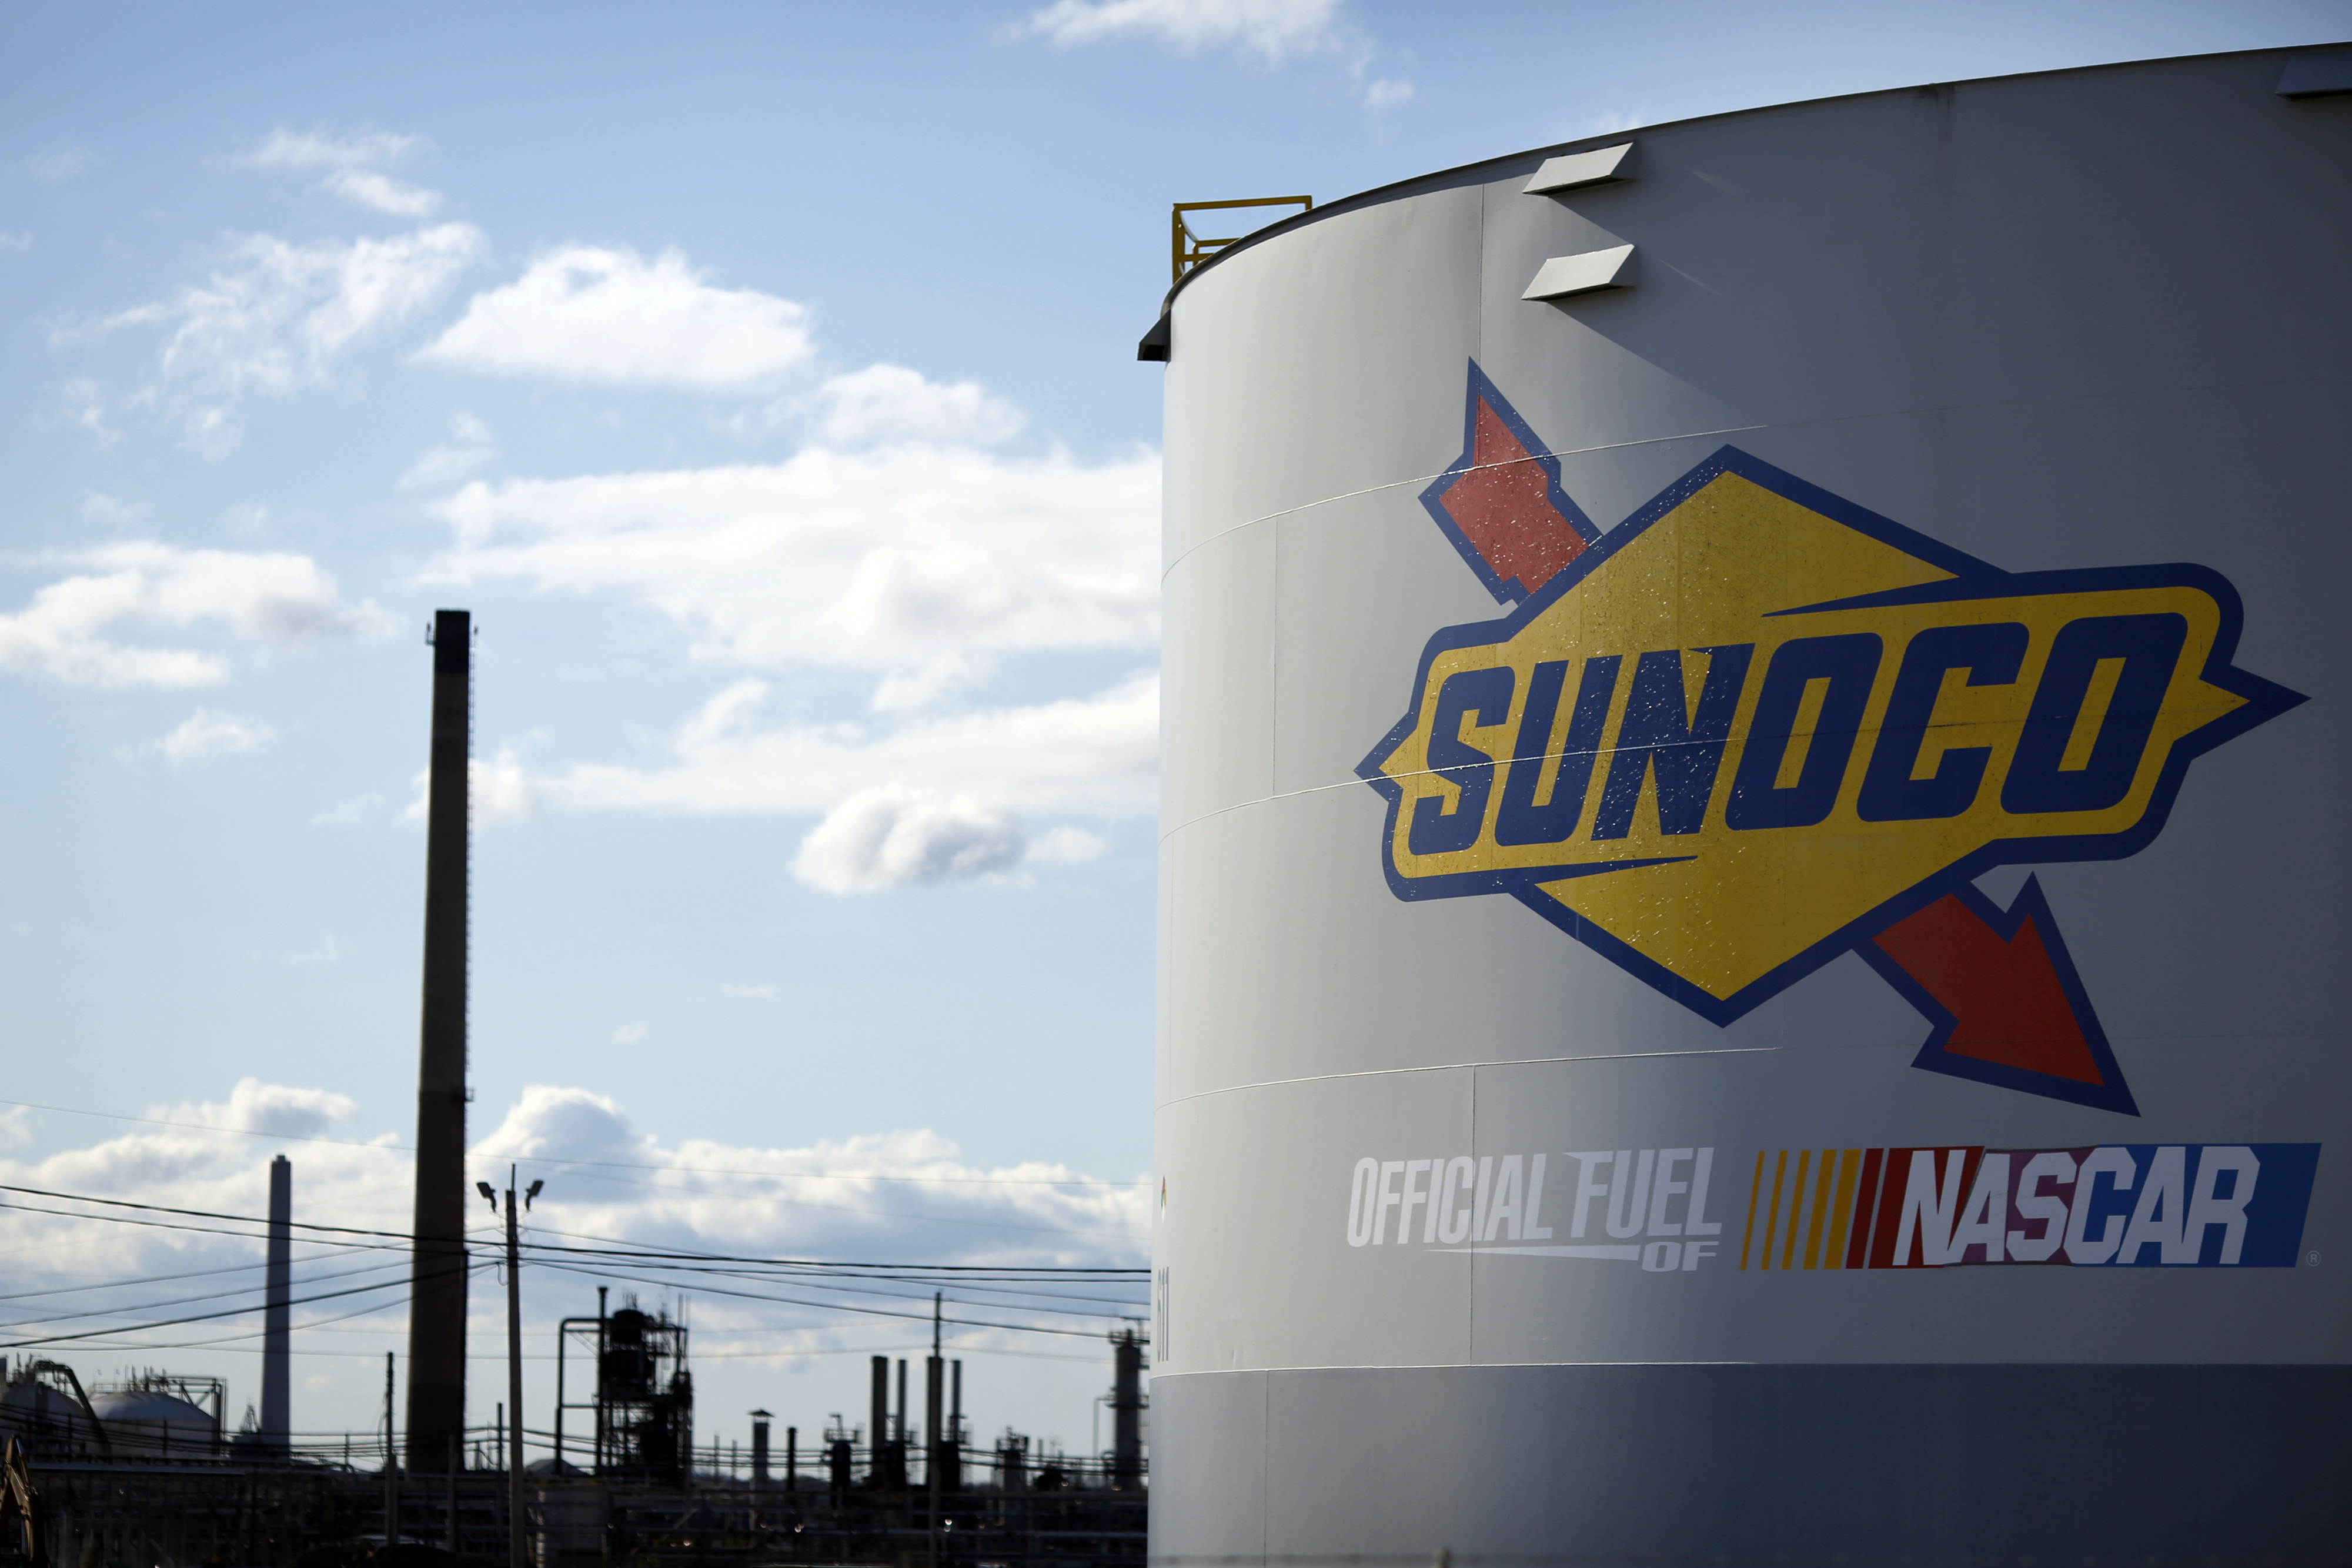 Signage is displayed on a former oil storage tank on the grounds of the Sunoco Logistics Marcus Hook Industrial Complex ethane terminal in Pennsylvania.